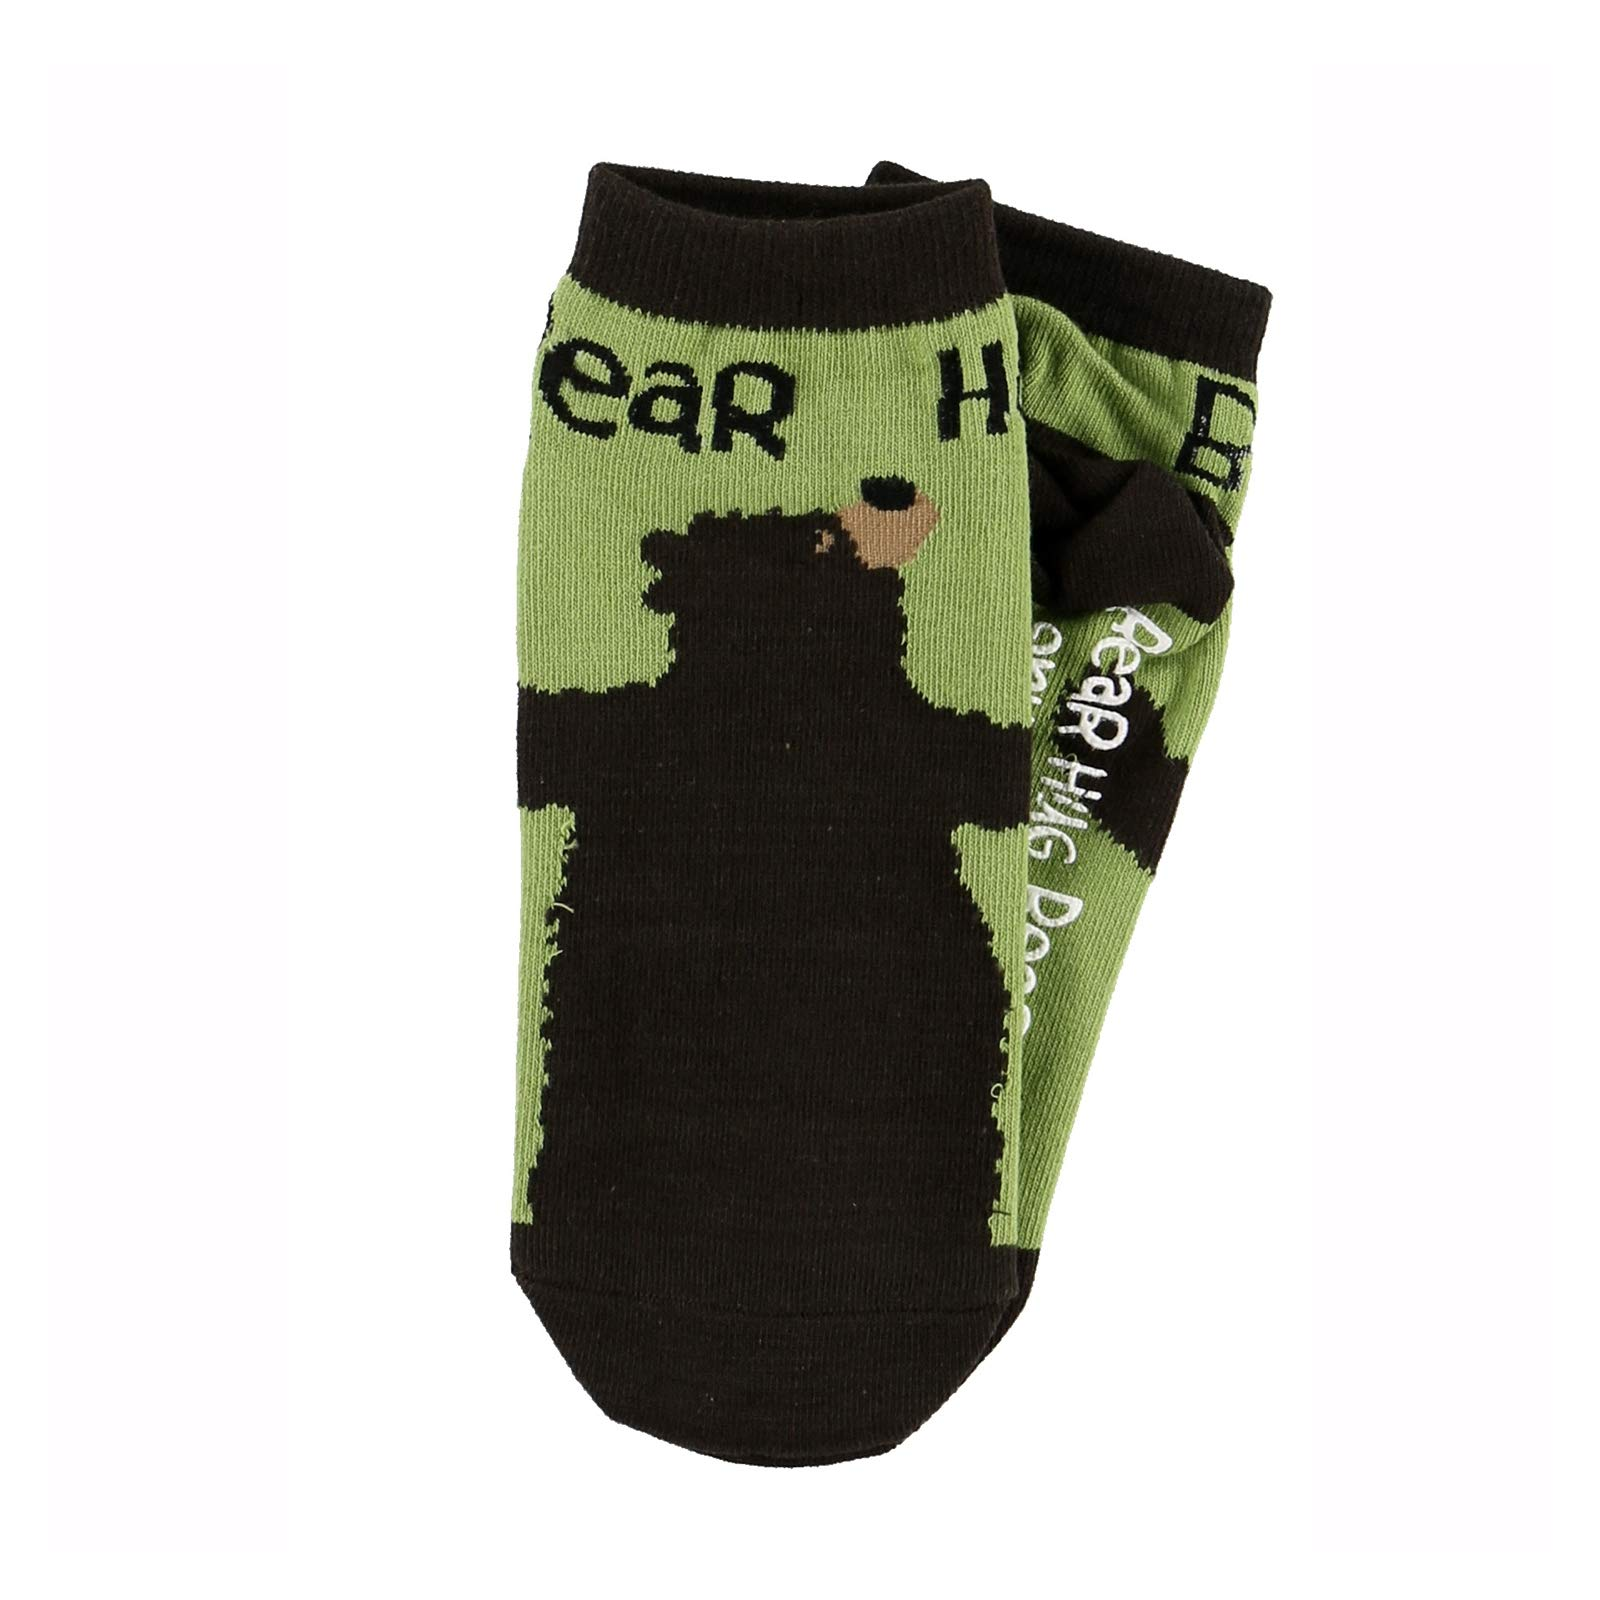 LazyOne Unisex Too Cool Bear Hug Erwachsenen Slipper Socken Gr/ö/ße 37-41